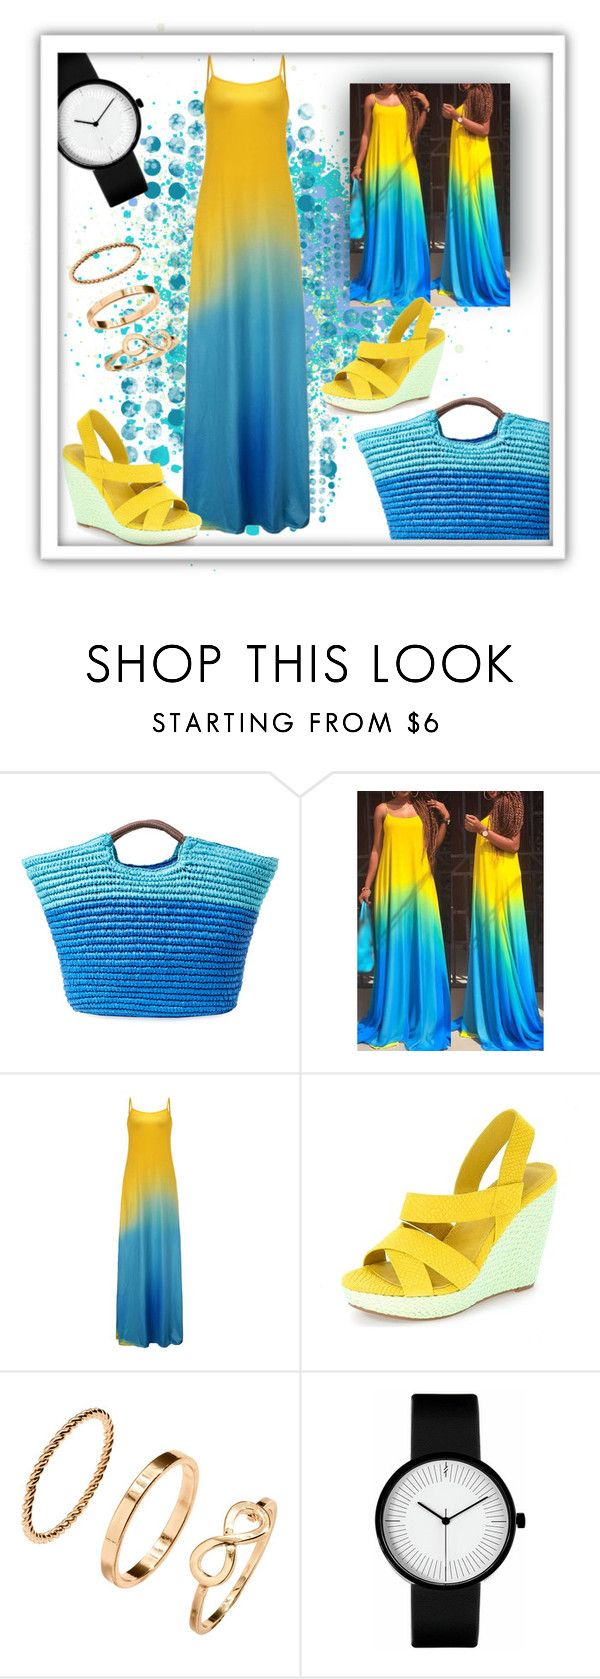 """""""Maxi dress for end of the summer"""" by iva-hrgic98 ❤ liked on Polyvore featuring Alex + Alex and H&M"""